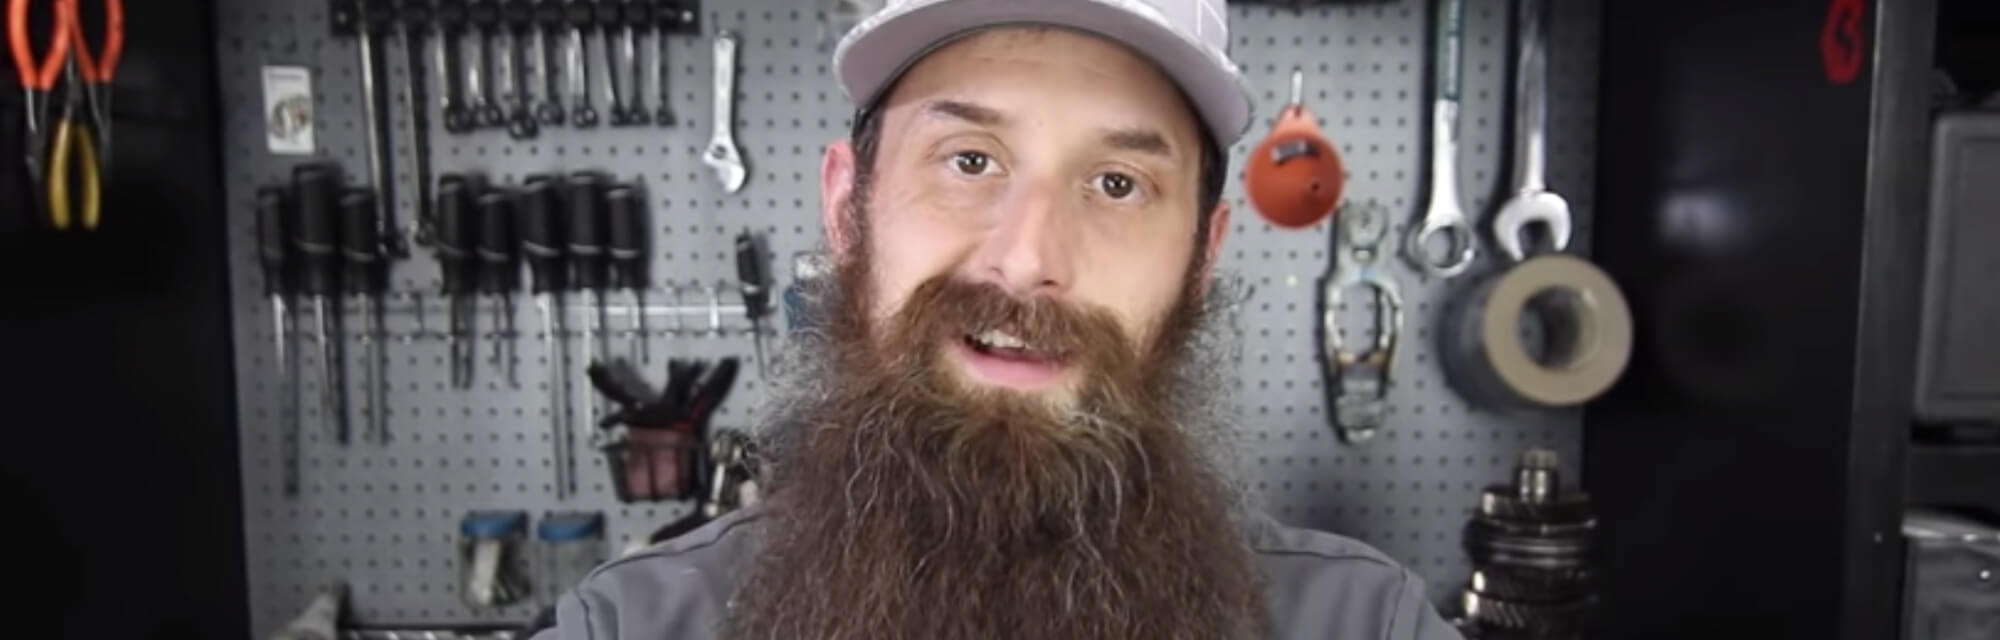 An image of Charles Sanville aka The Humble Mechanic who is a YouTube influencer entrepreneur and a graduate of Universal Technical Institute.